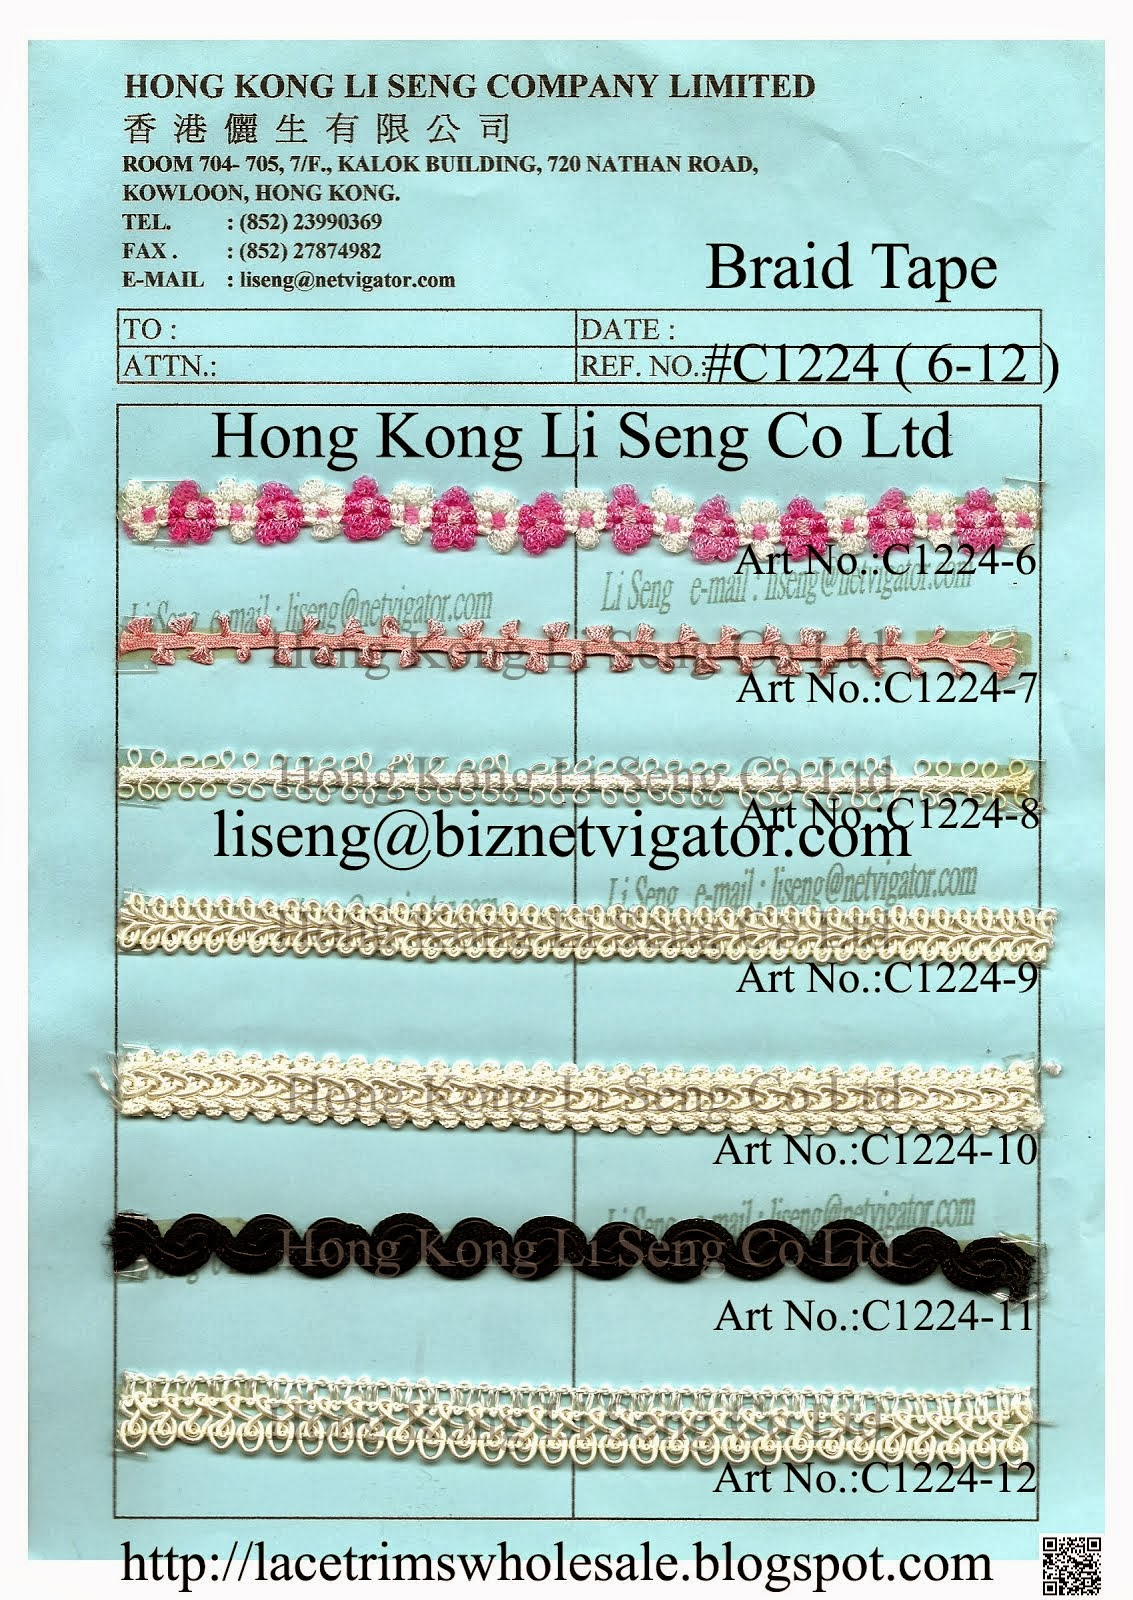 Braid Tape Wholesale and Supplier - Hong Kong Li Seng Co Ltd